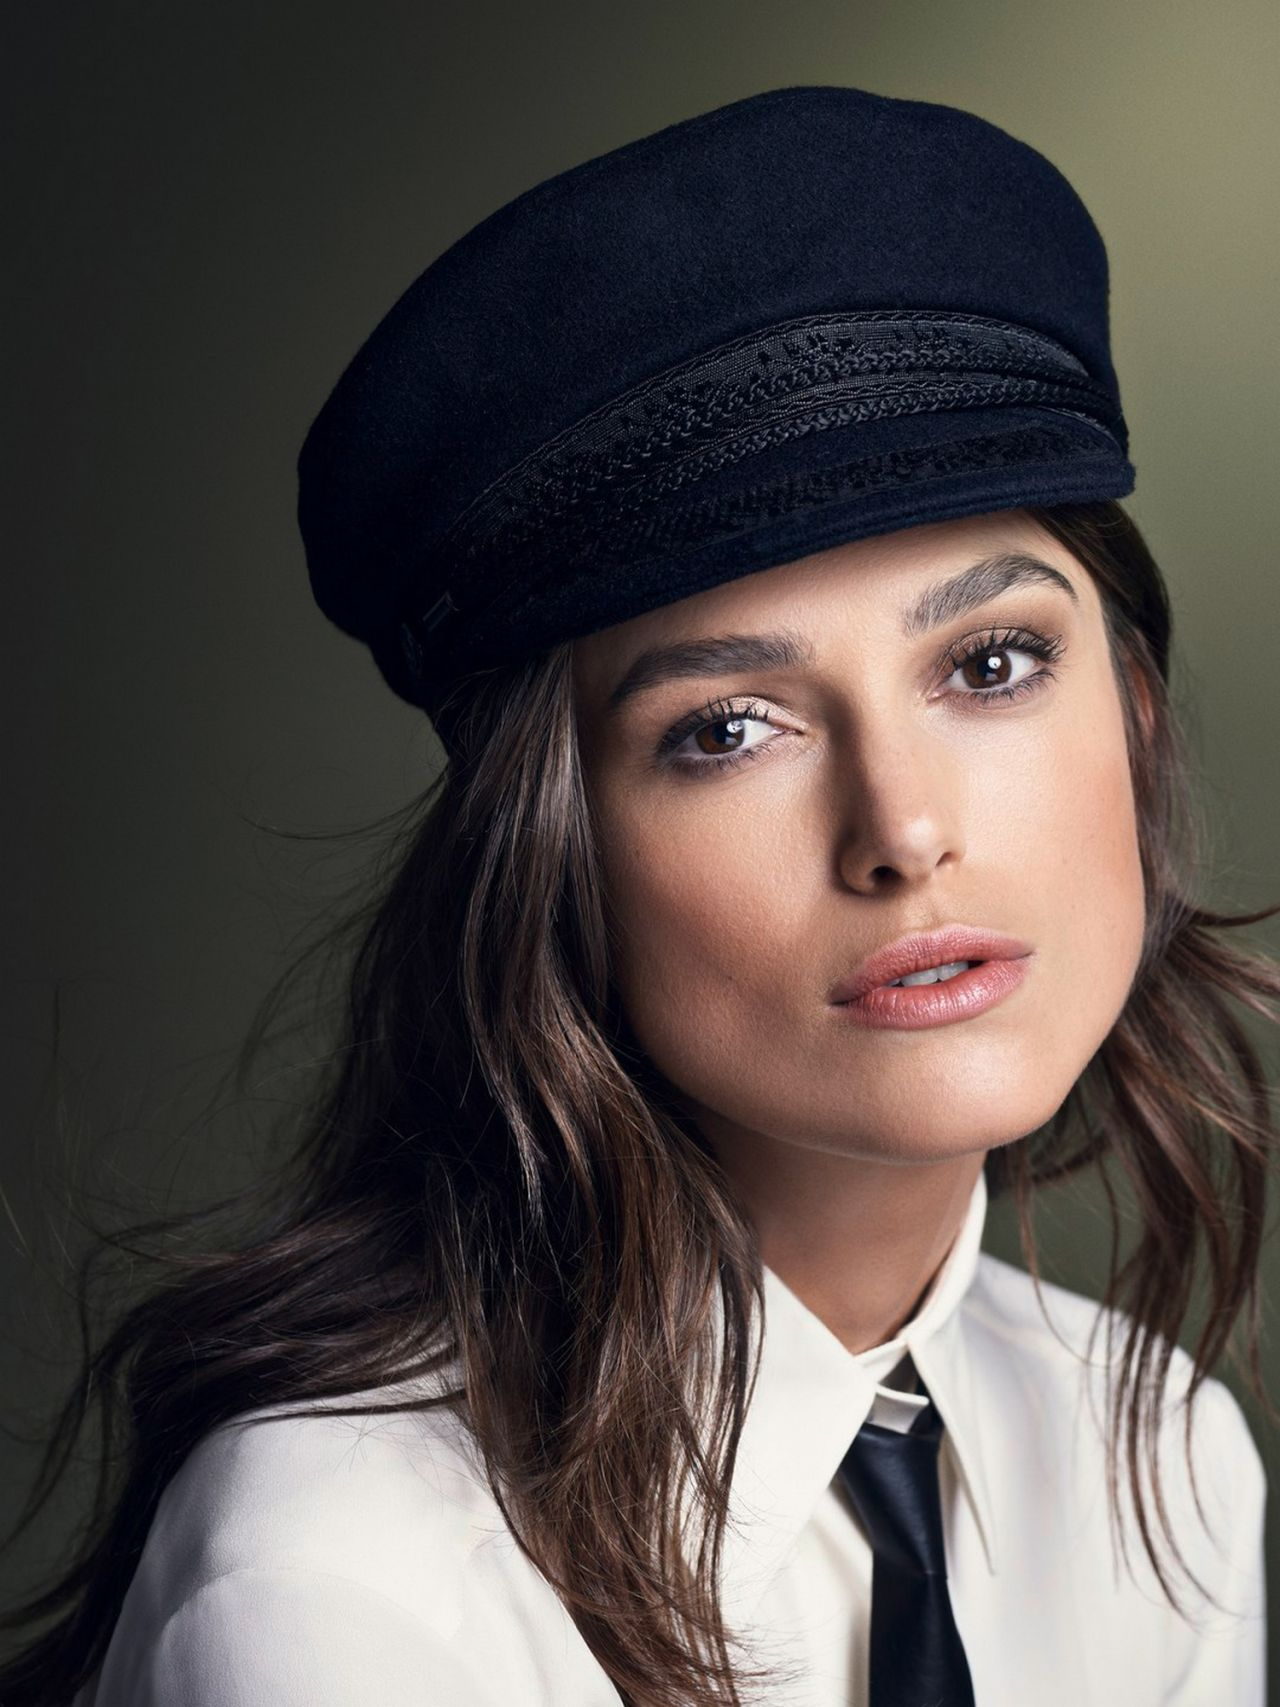 Keira Knightley – Photoshoot for Glamour Magazine November 2014 Keira Knightley